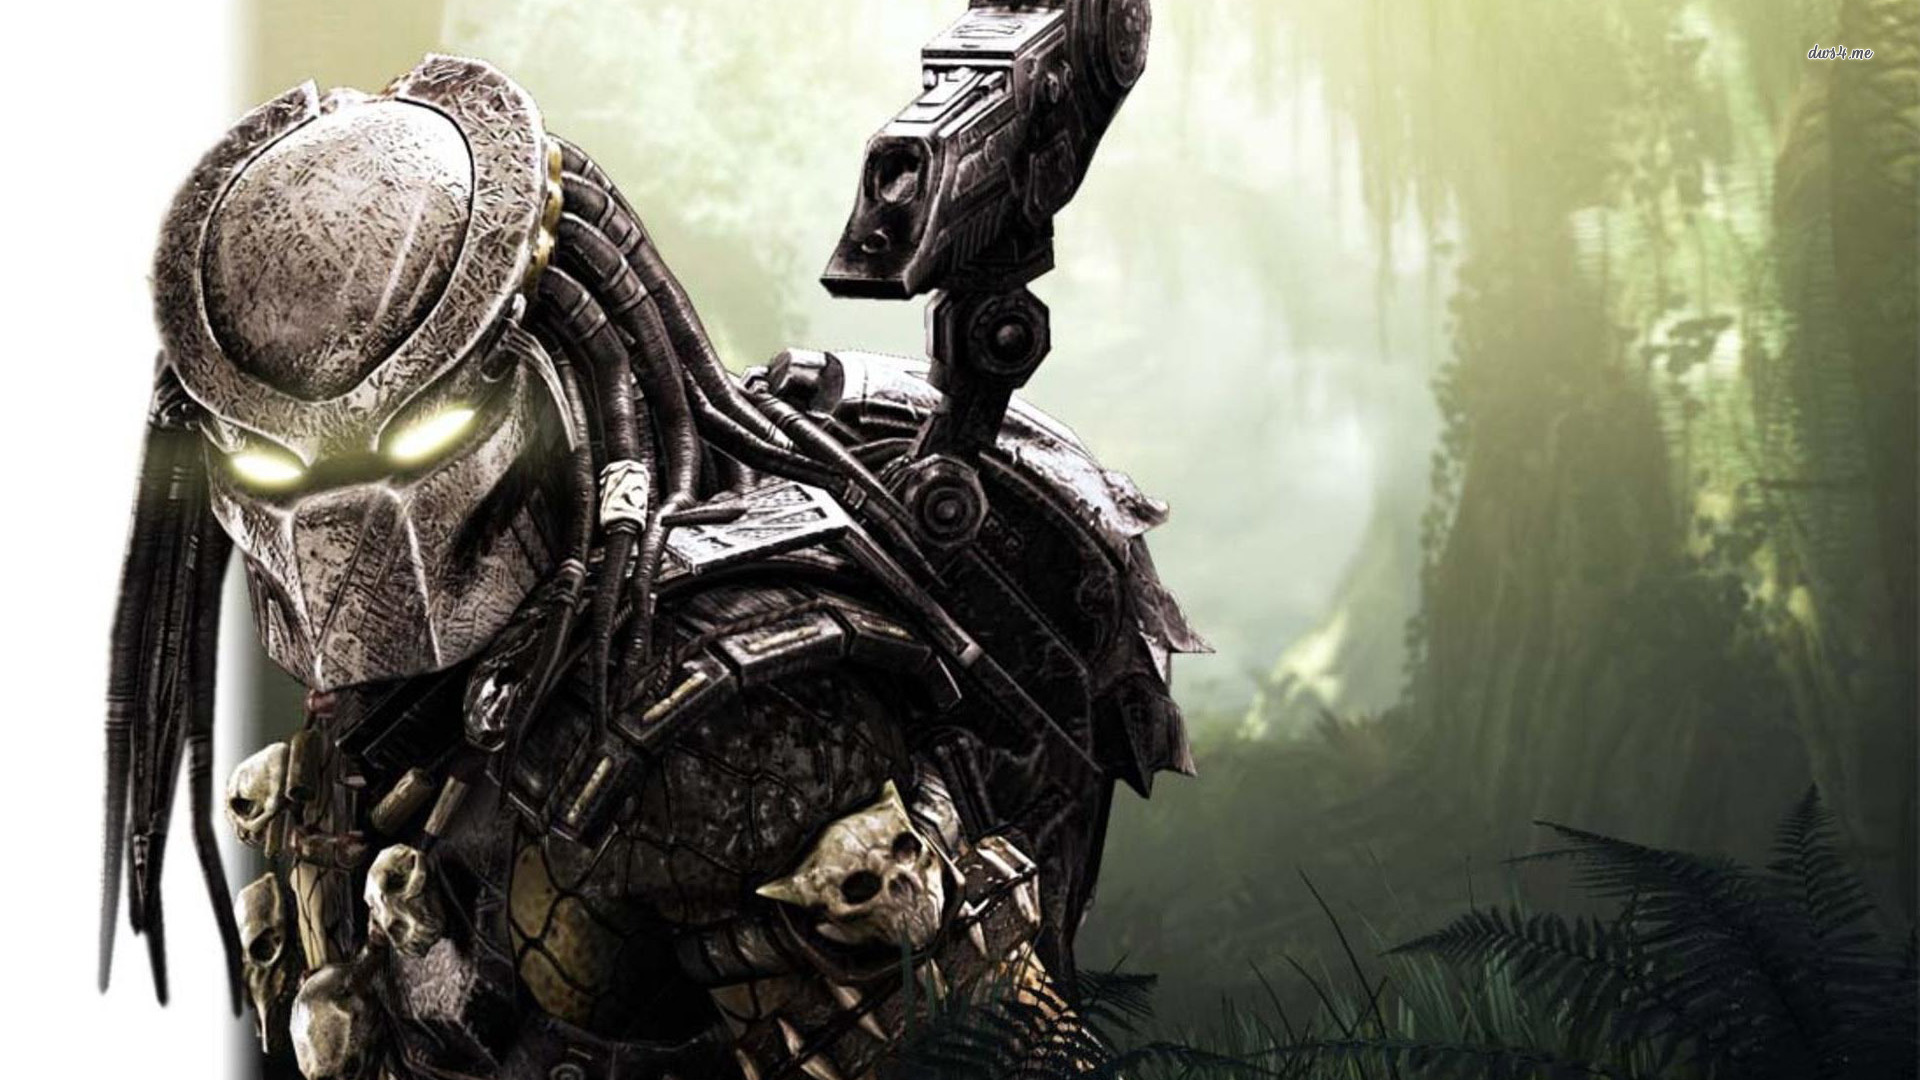 Predator   Alien vs Predator wallpaper   Movie wallpapers   7161 1920x1080